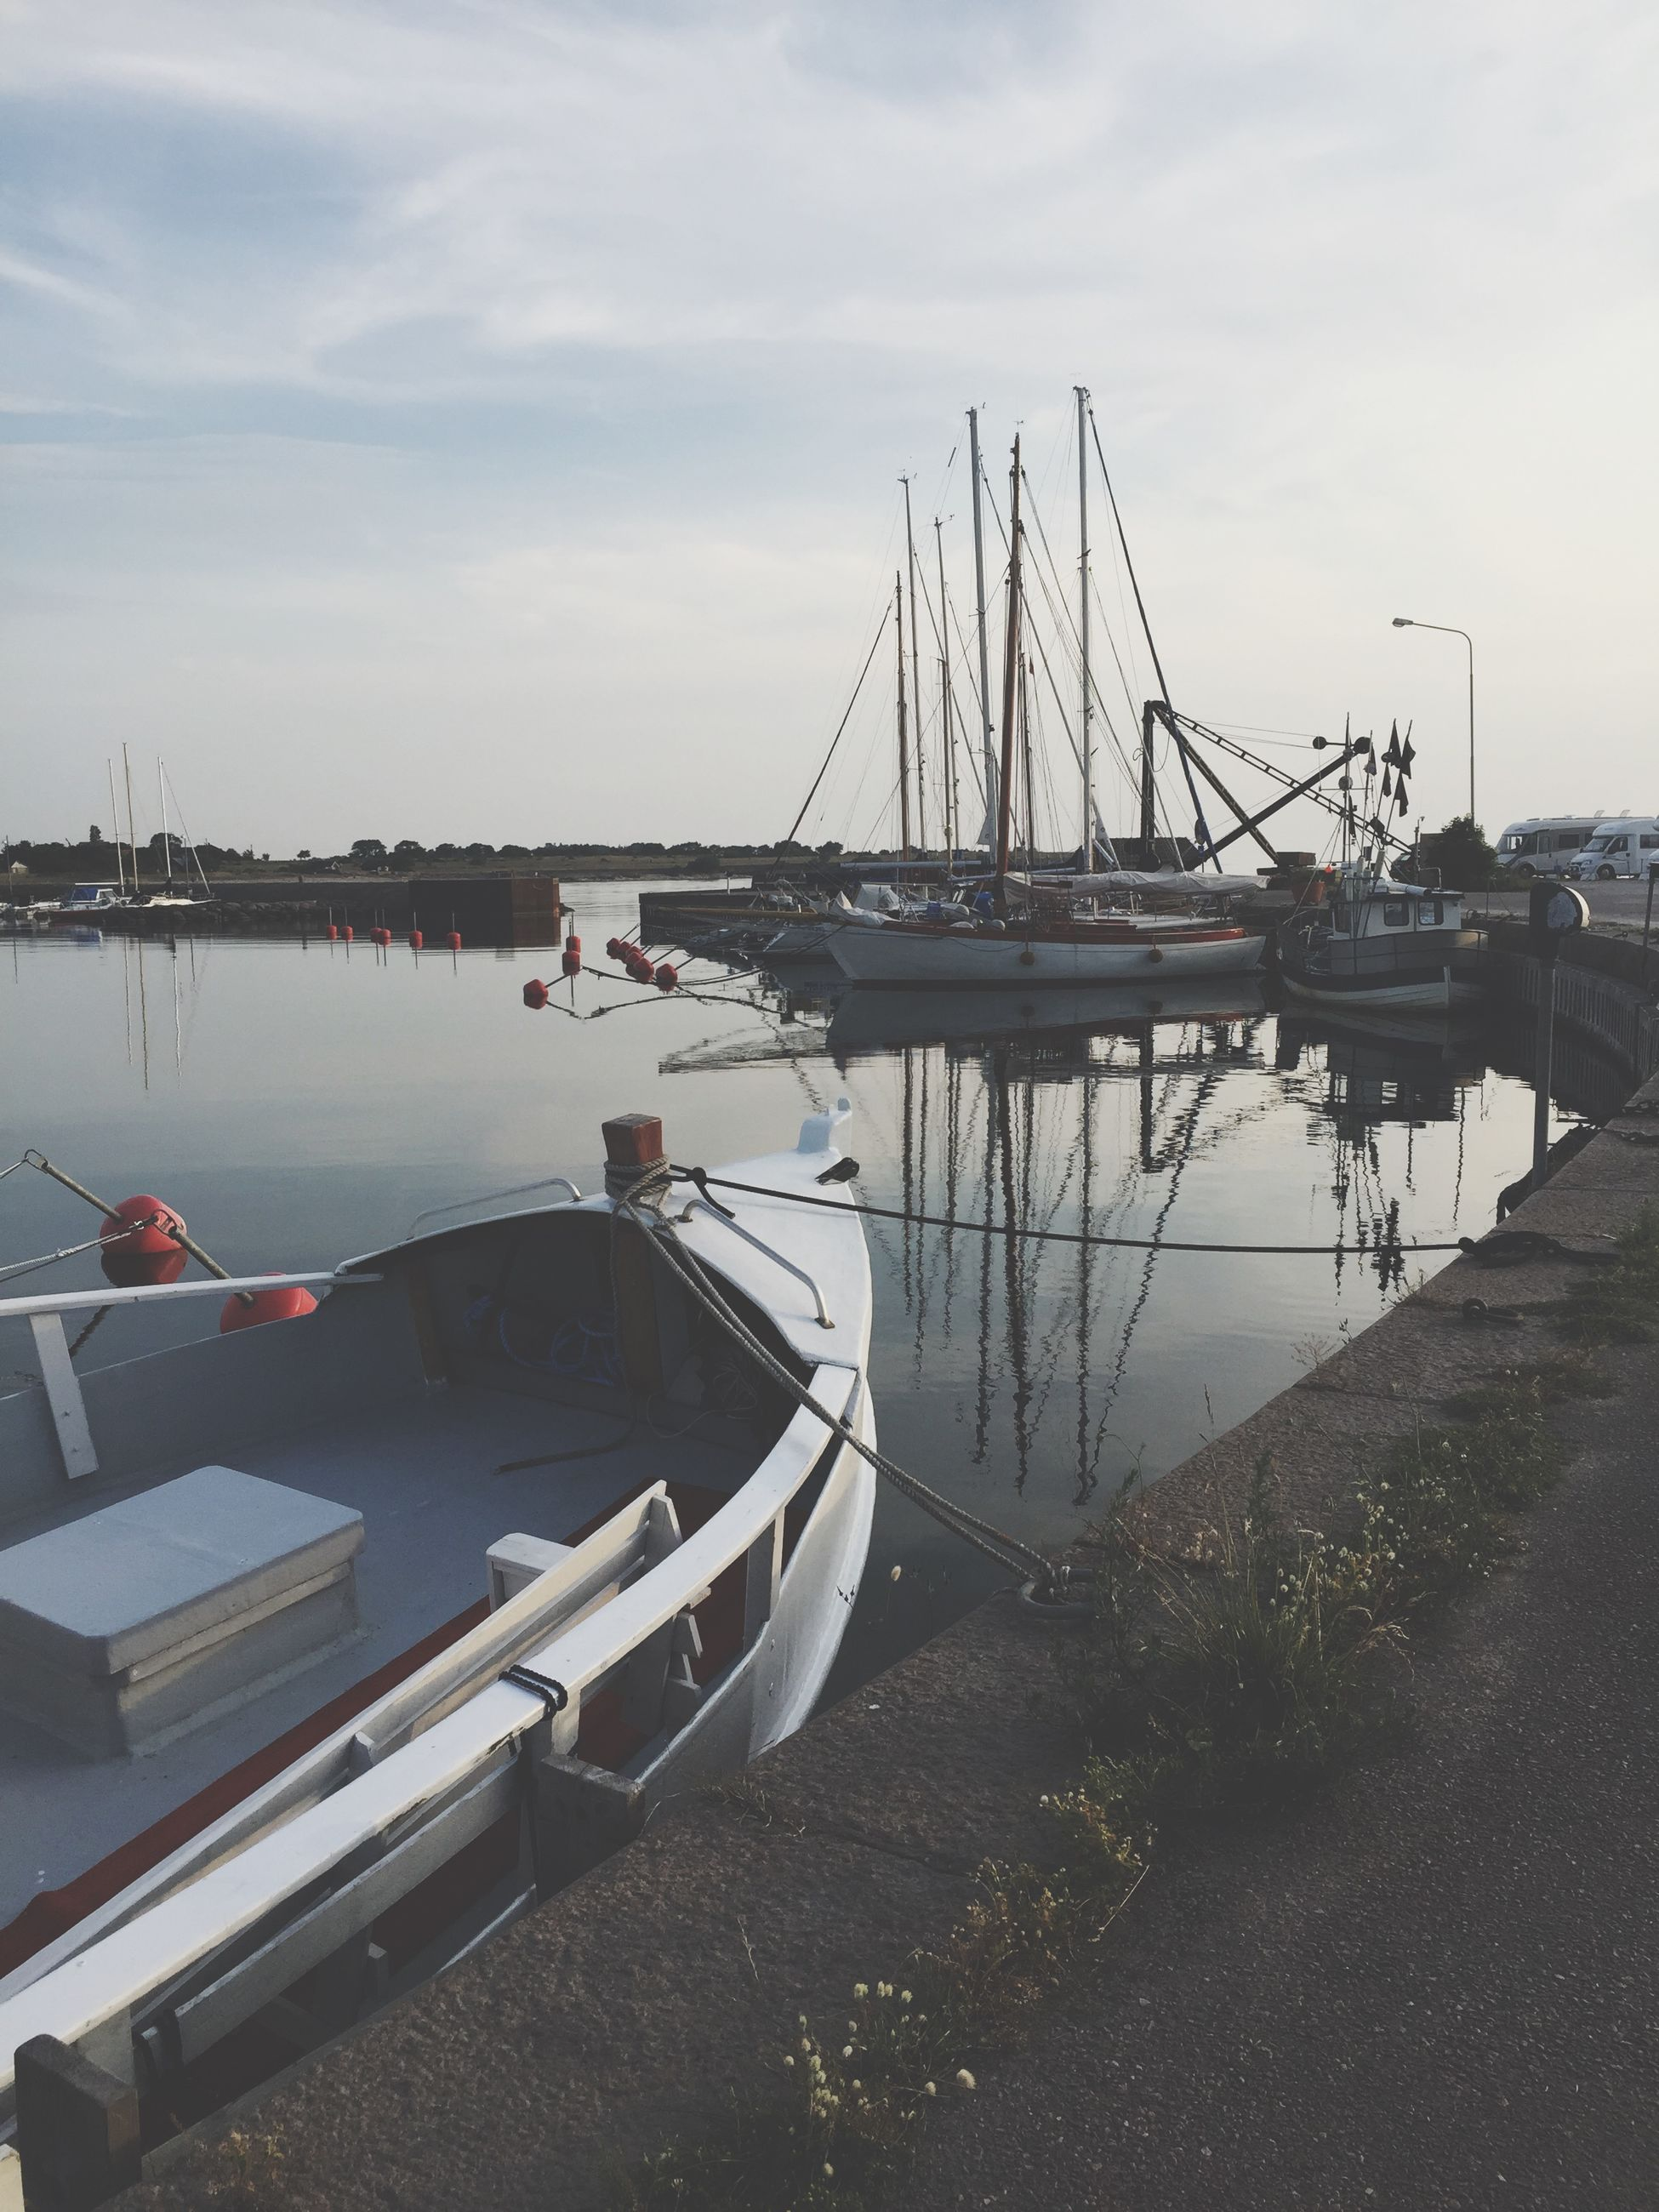 nautical vessel, transportation, water, moored, boat, mode of transport, mast, sky, harbor, sailboat, sea, nature, cloud - sky, lake, outdoors, no people, river, commercial dock, tranquility, day